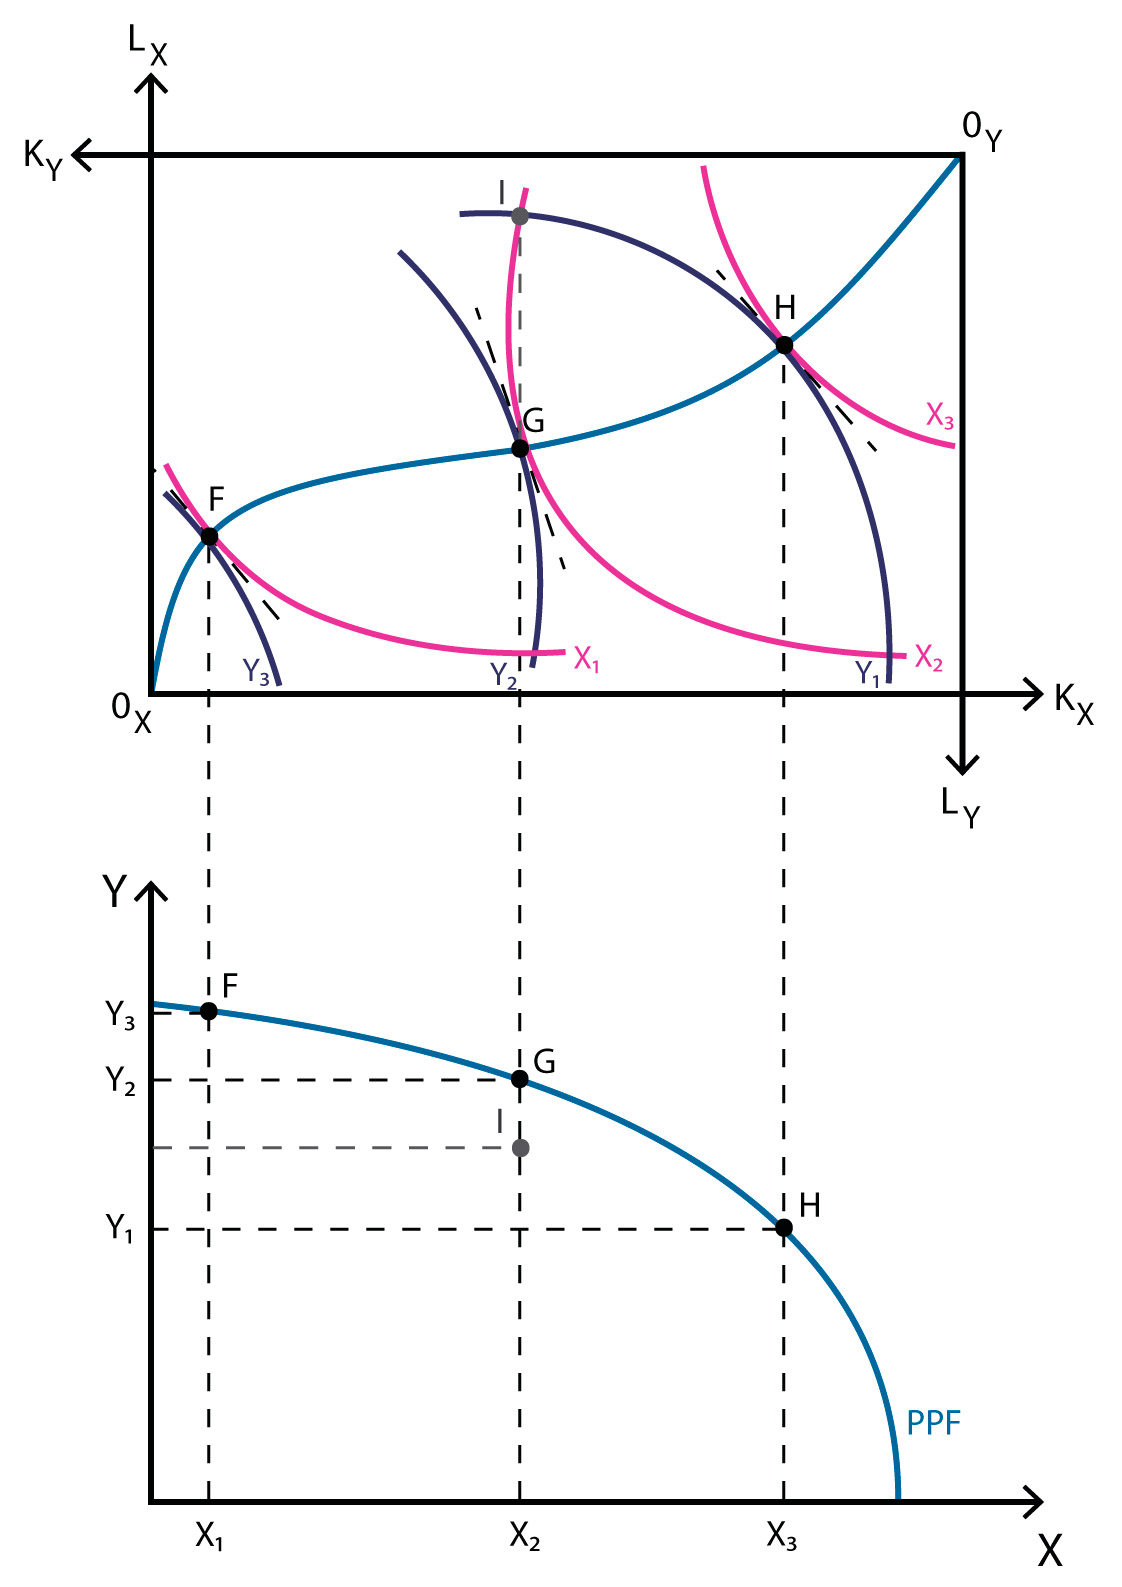 General equilibrium - Production possibility frontier